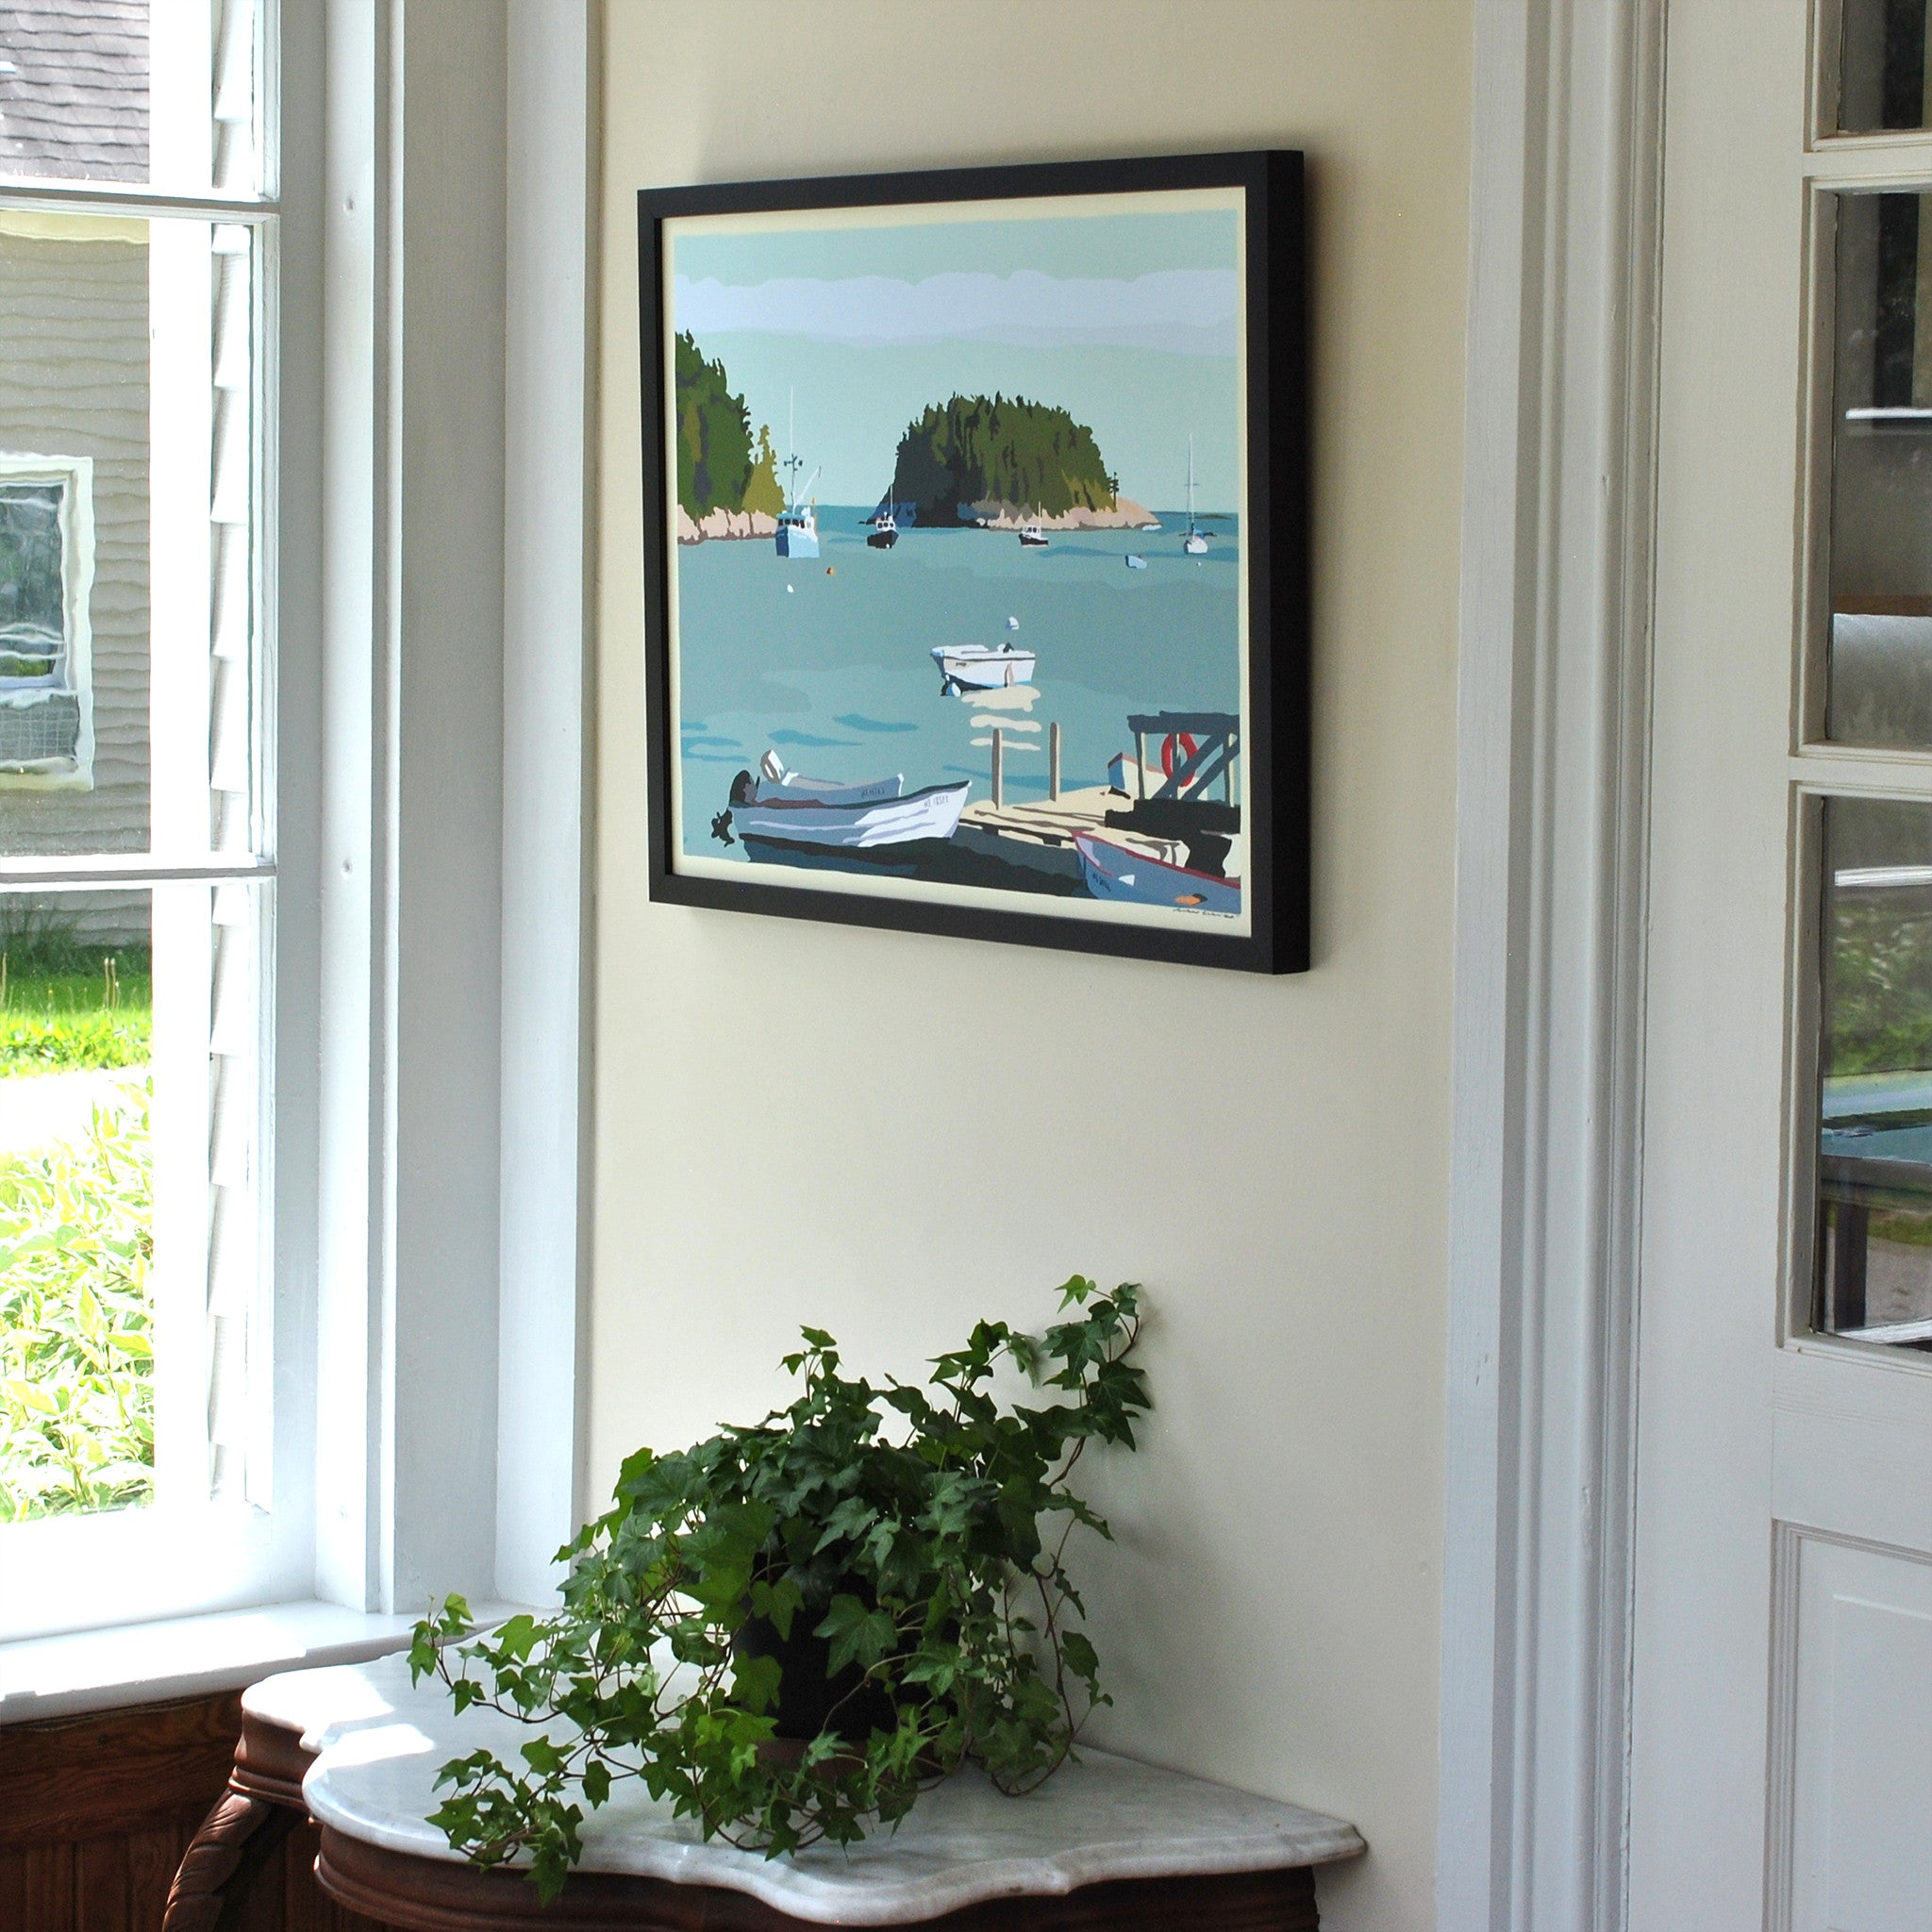 "I Am An Island - horizontal format - Art Print 18"" x 24"" Framed Wall Poster - Maine"